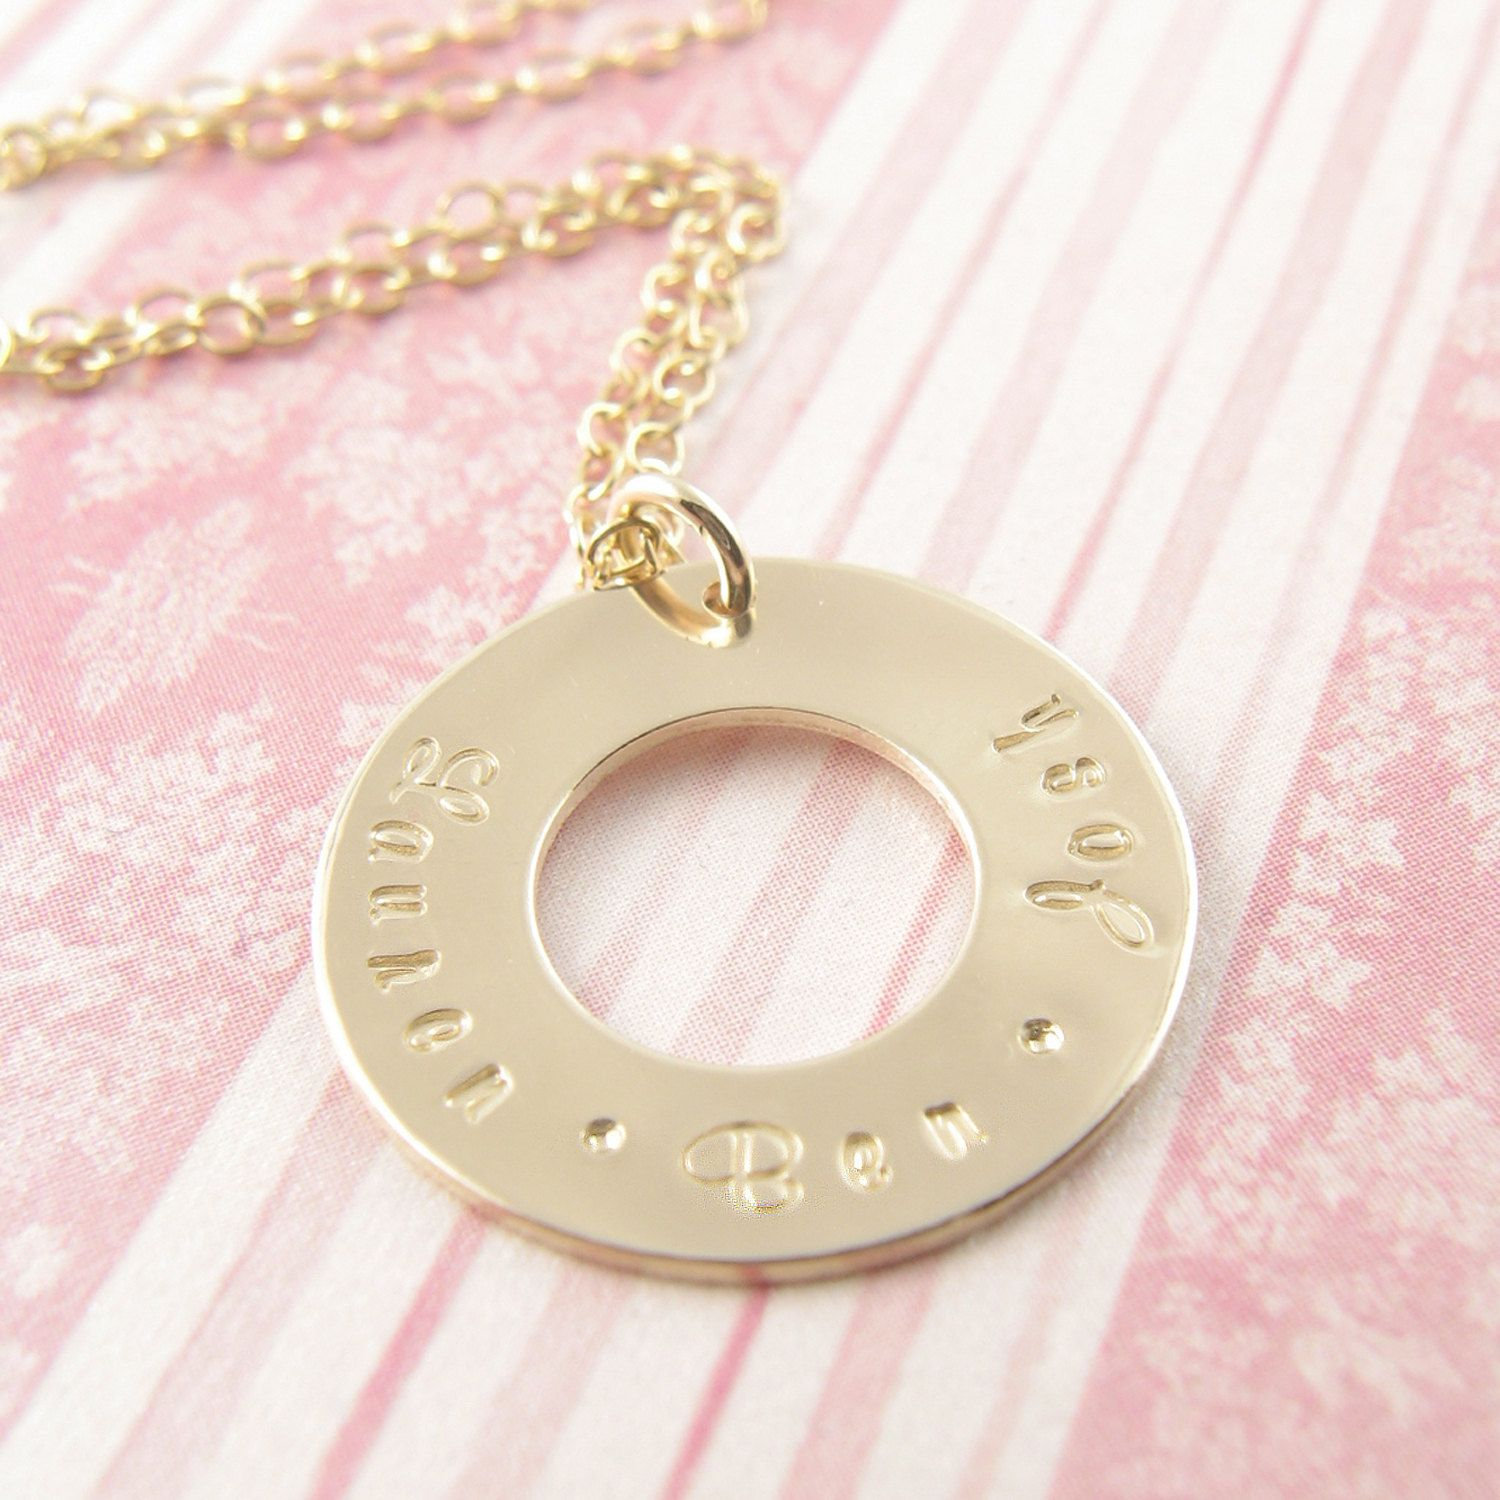 Etsy Transaction - Gold Washer Personalized Necklace - 14k Gold Filled - Personalized Mother's Necklace - Mother's Day